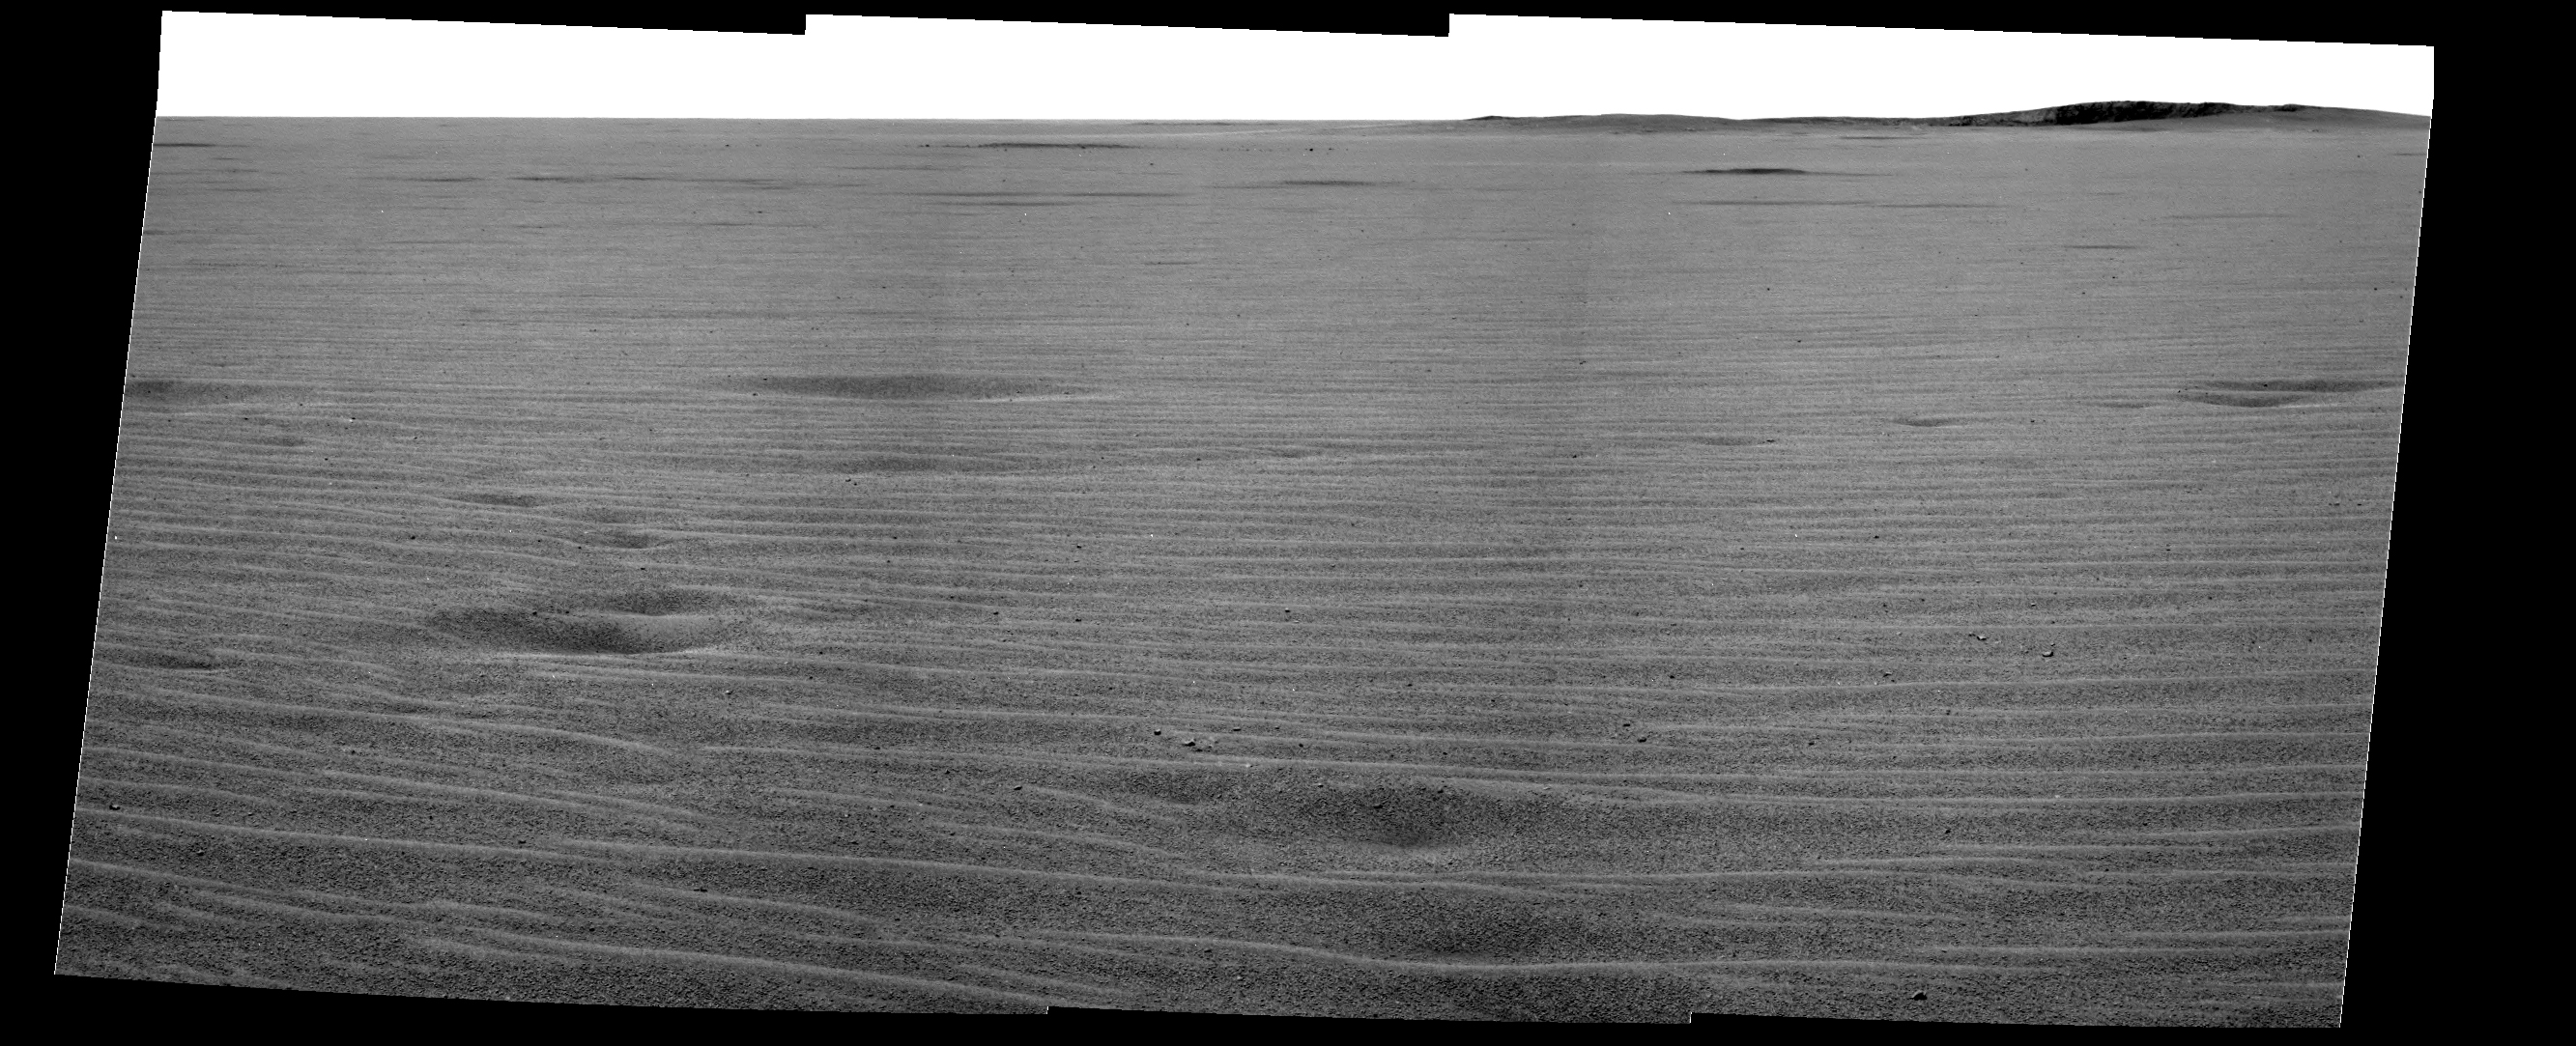 "Mars MER Opportunity The Path to Endurance This mosaic image from the Mars Exploration Rover Opportunity's panoramic camera provides an overview of the rover's drive direction toward ""Endurance Crater,"" which is in the upper right corner of image."